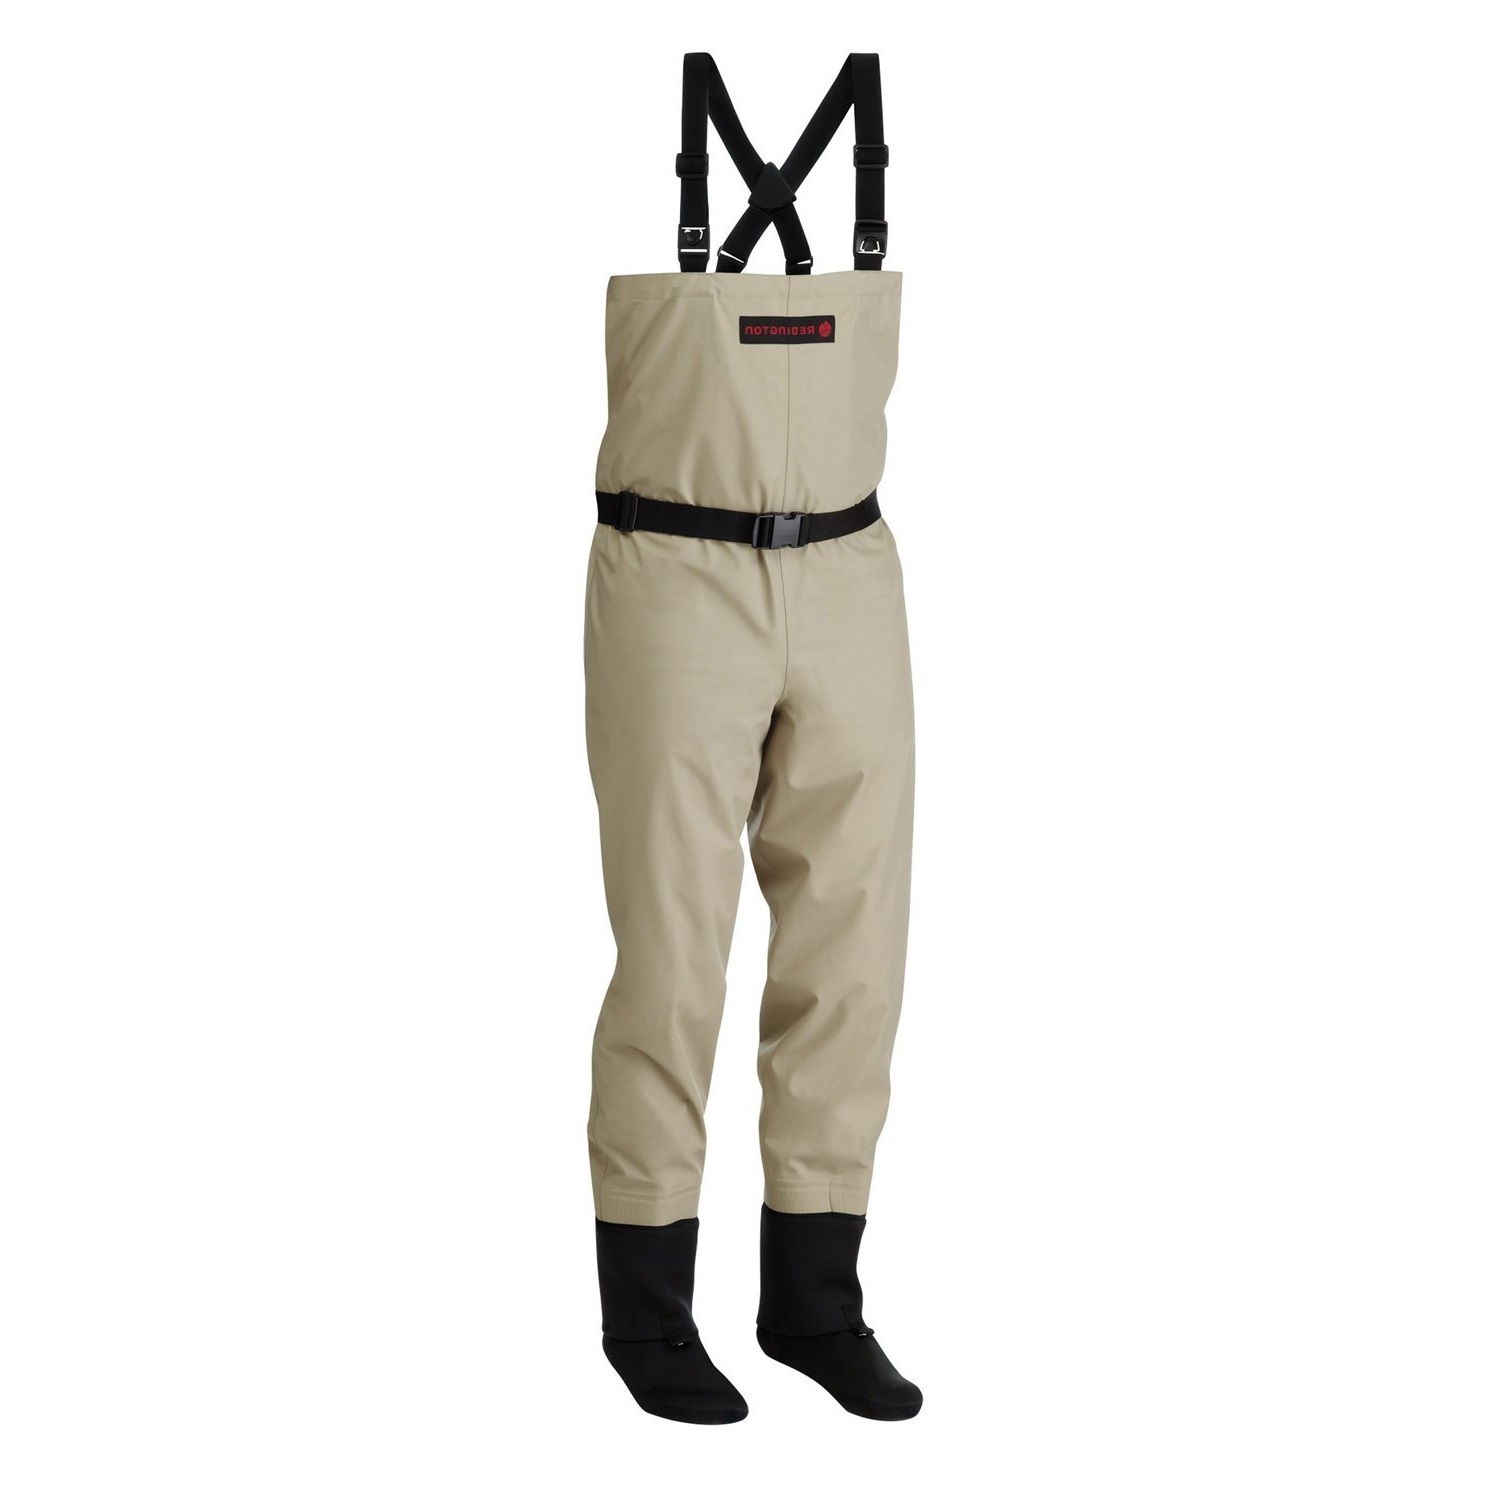 A.1 Best waders for trout fishing - 1000